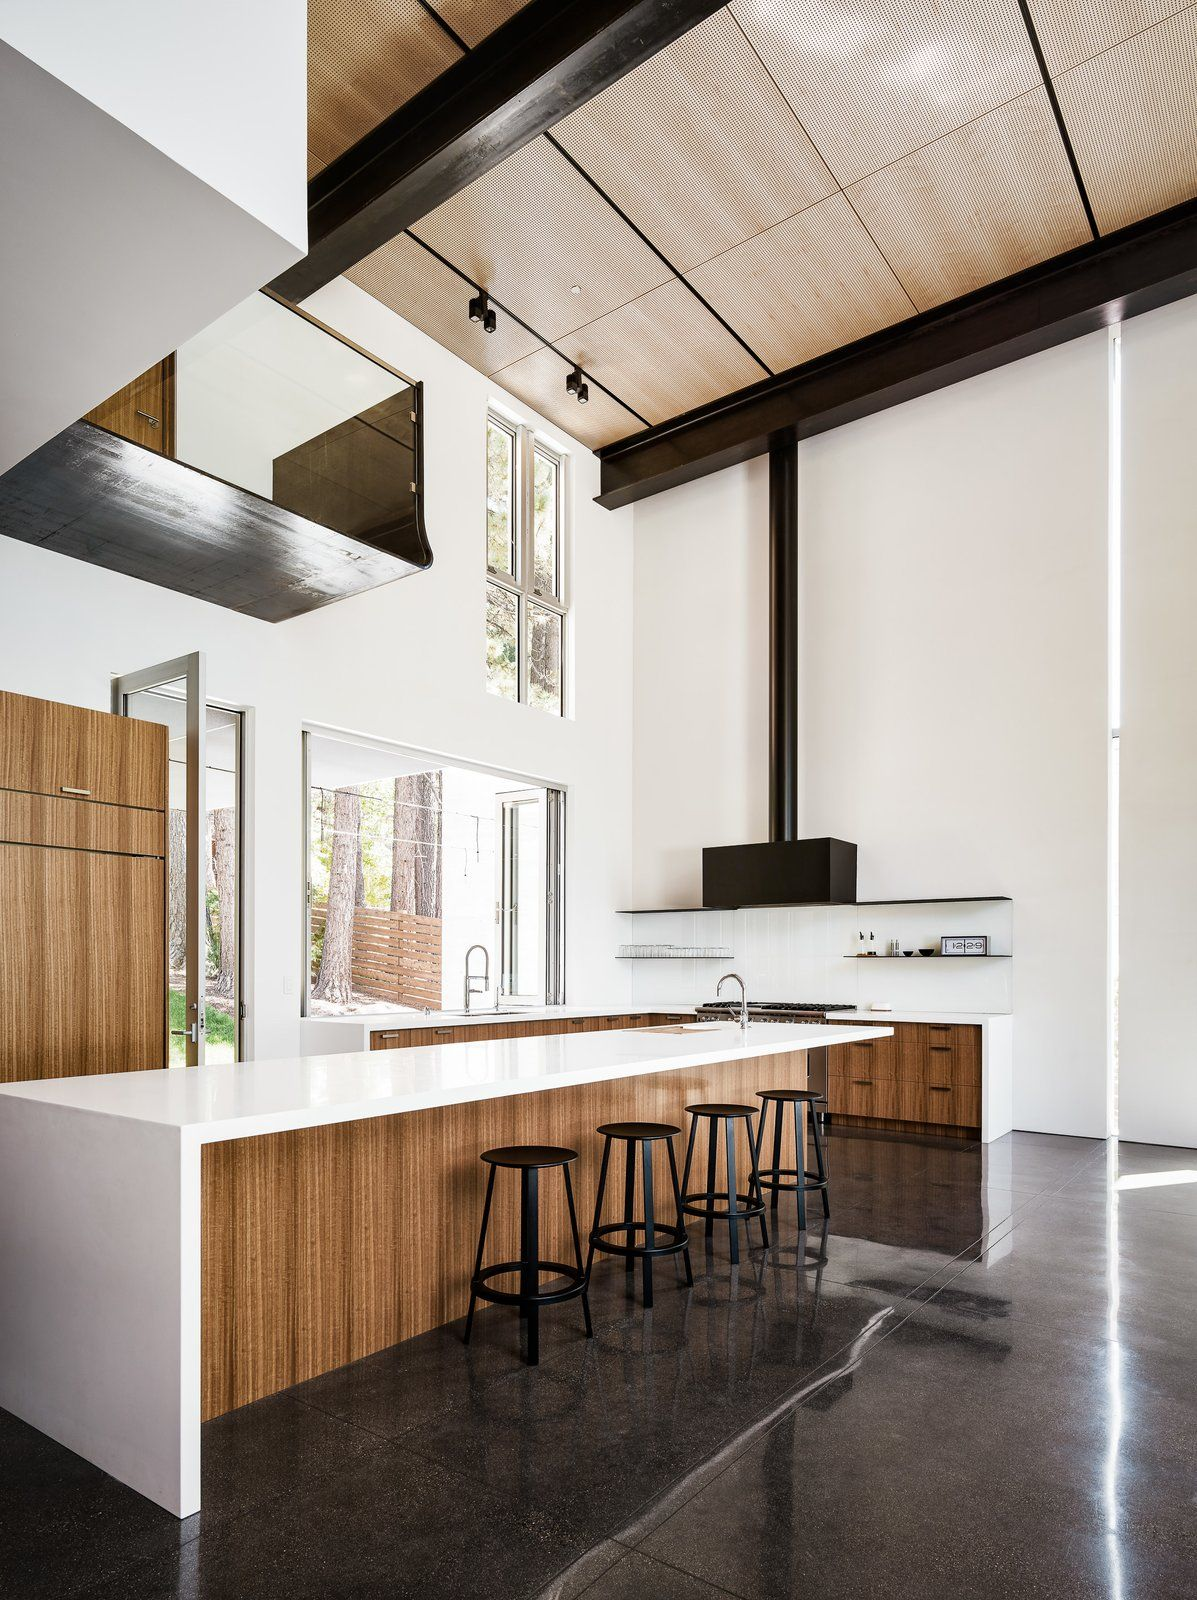 Kitchen concrete floor ceiling lighting wood cabinet and range hood operable doors and windows capture westerly breezes off the lake that flow through